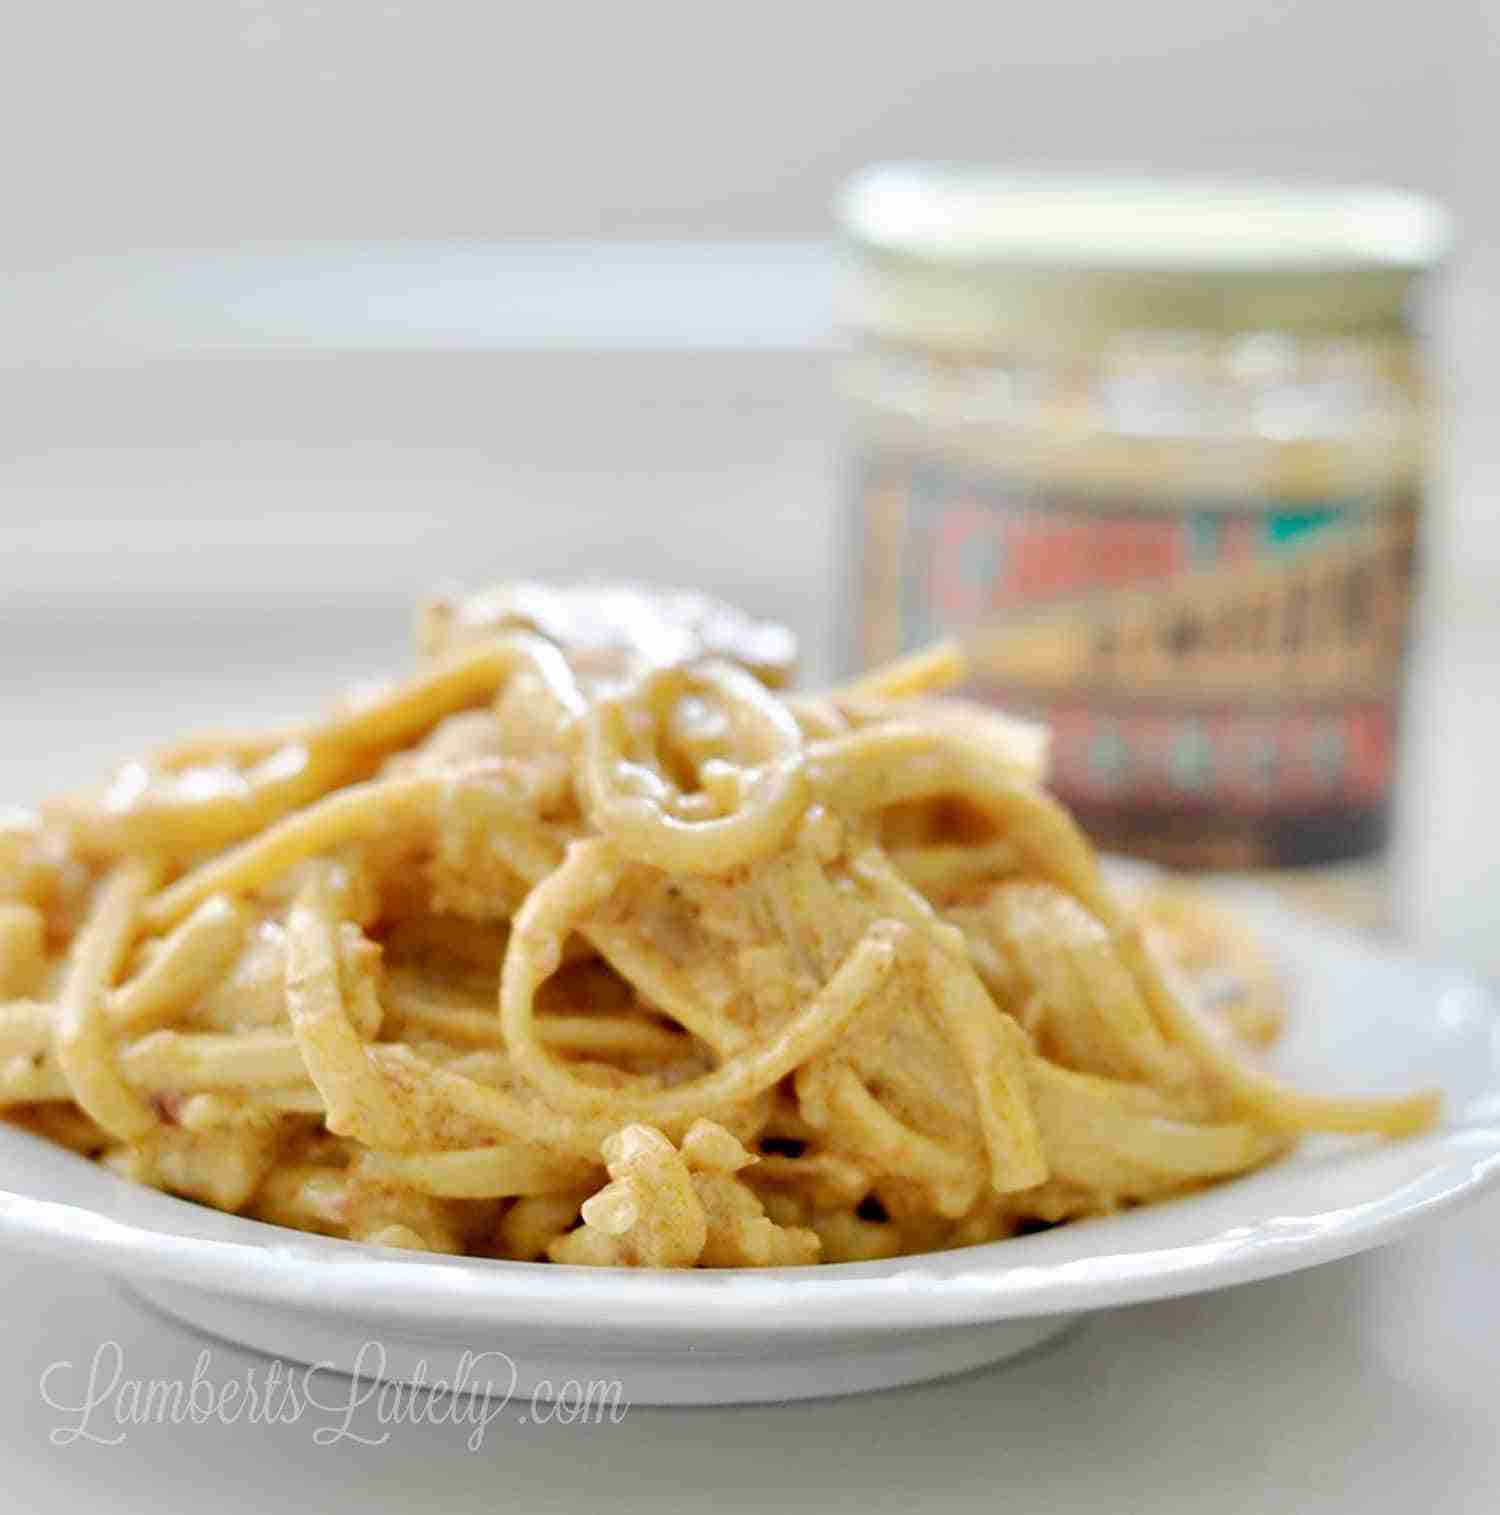 Chili Onion Crunch Chicken Pasta uses the popular Trader Joe's sauce to make a spicy, creamy noodle dish in just minutes with an Instant Pot! One of the best uses for this condiment is in pasta recipes - try it with shrimp or other seafoods for a fun twist.